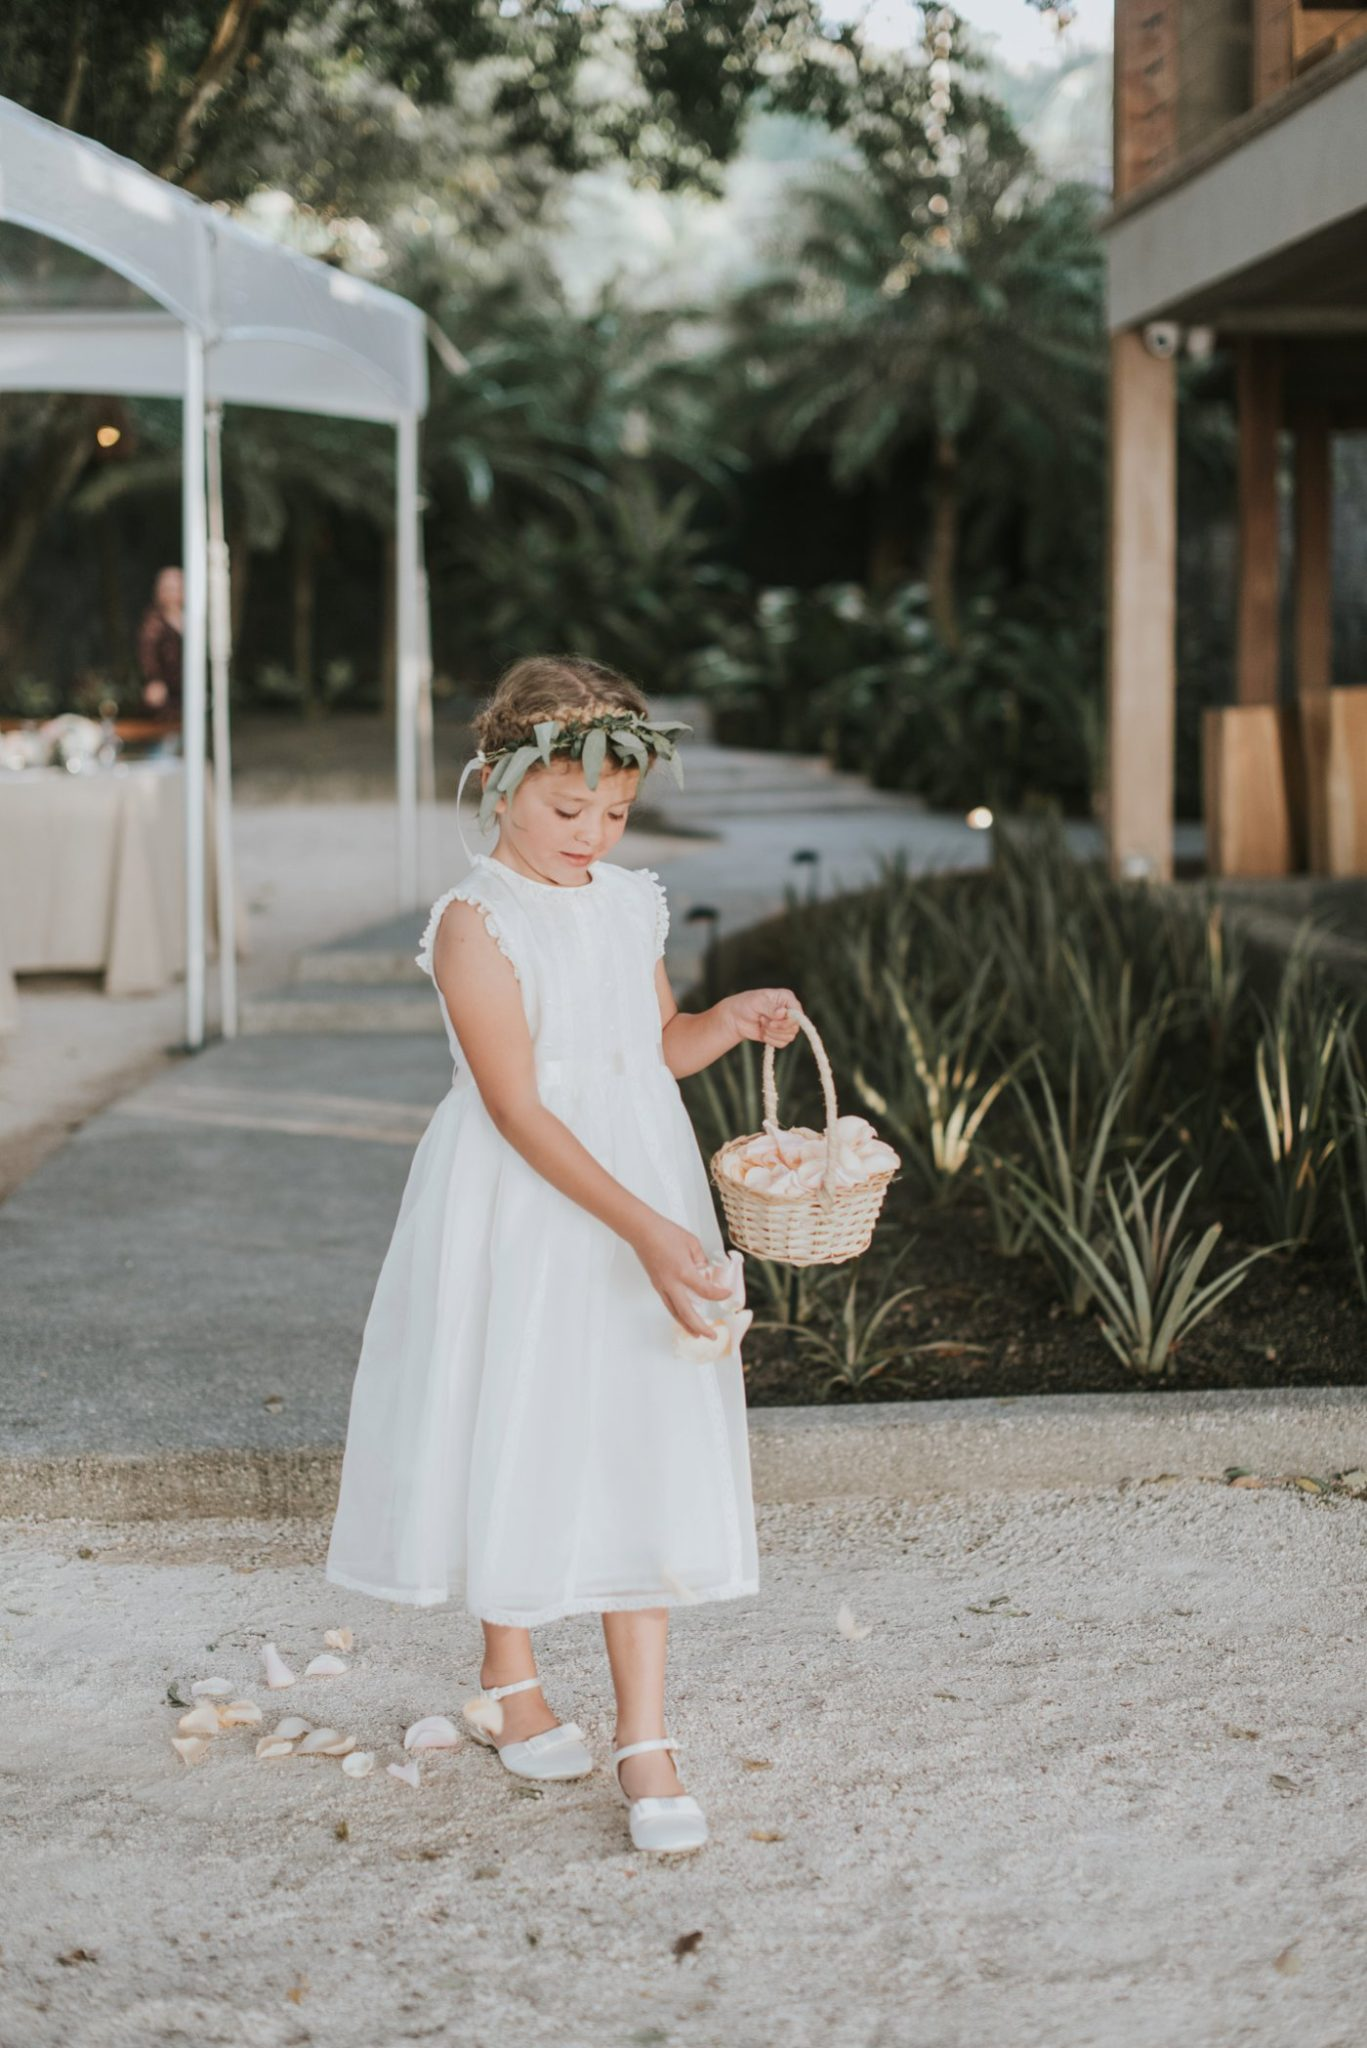 Bethany_Briton_beach_wedding_pangas_club_tamarindo_0025.jpg